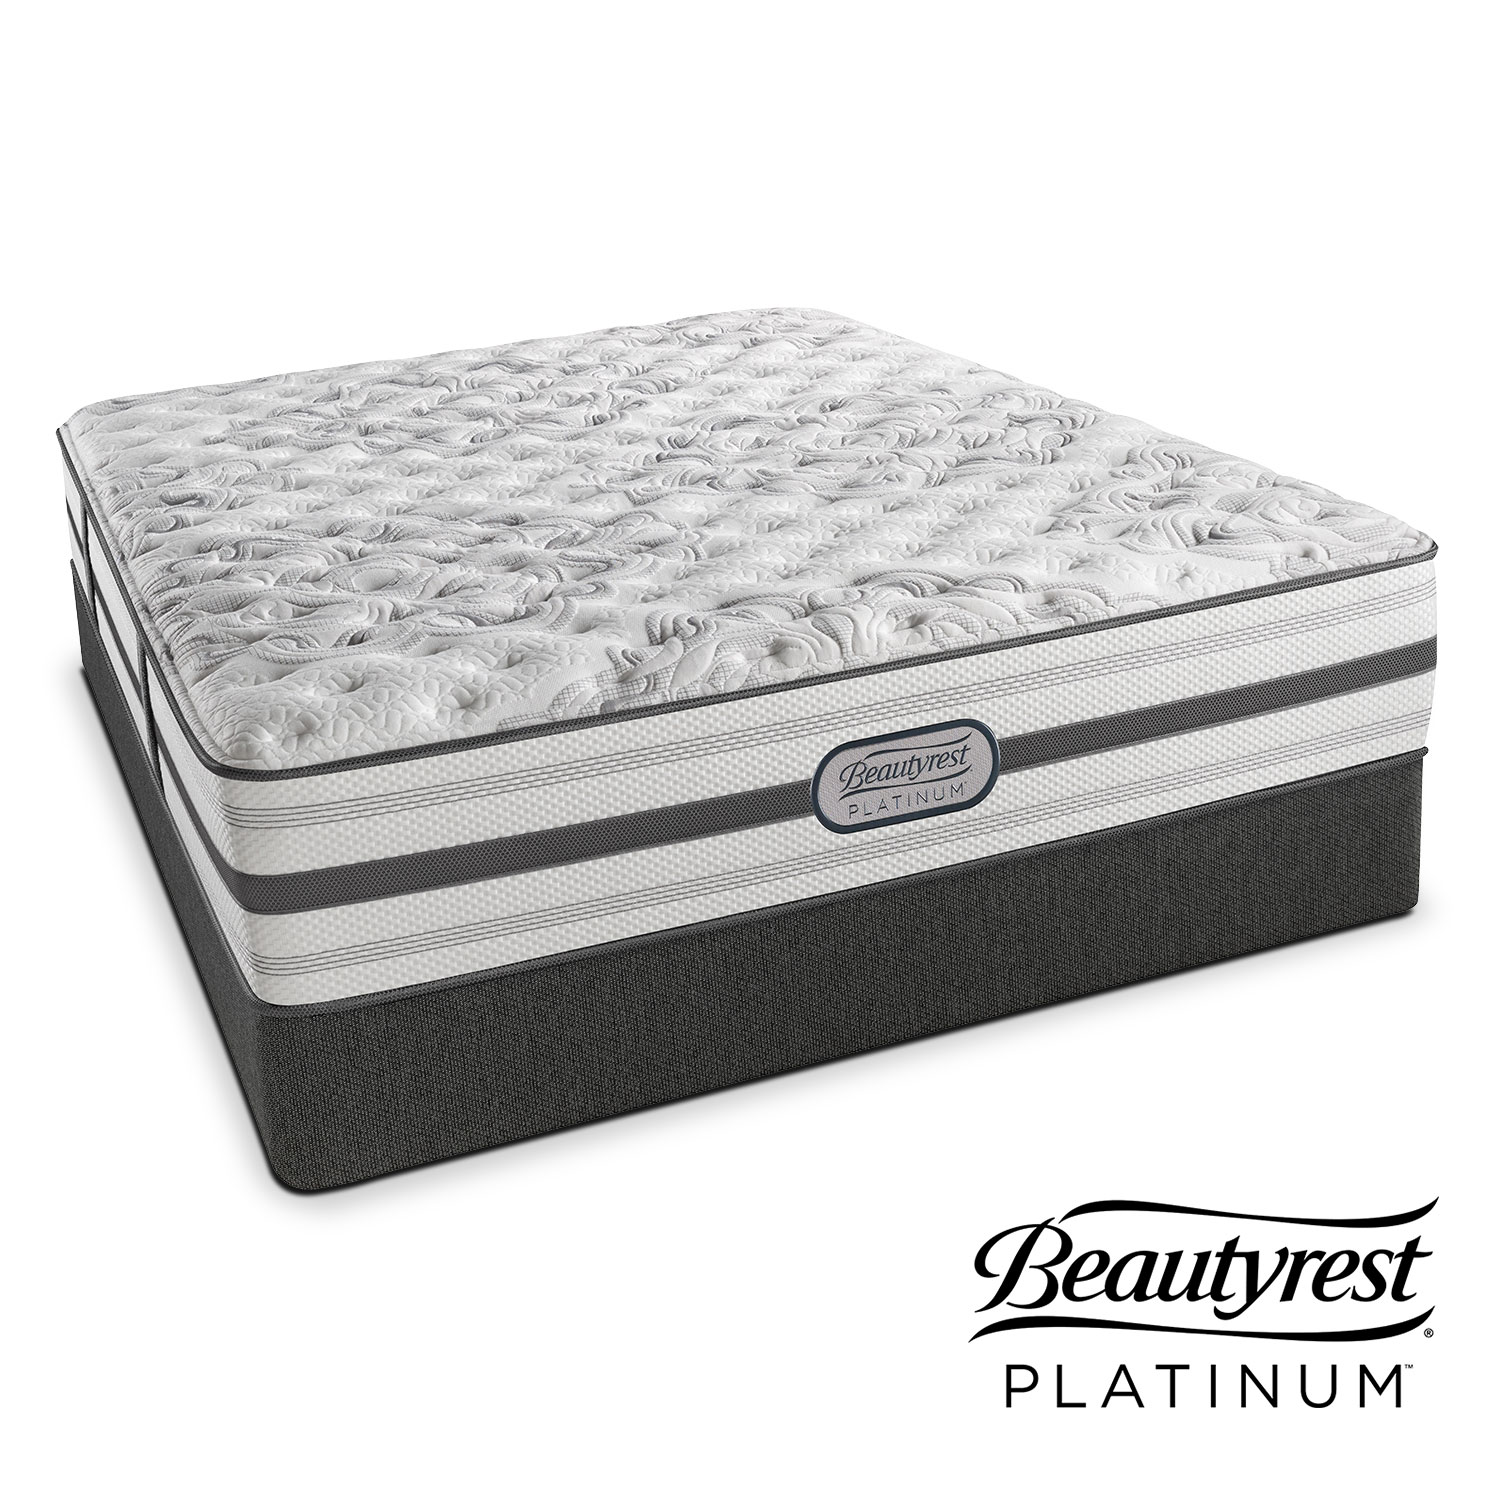 Mattresses and Bedding - Helena Twin Mattress/Foundation Set